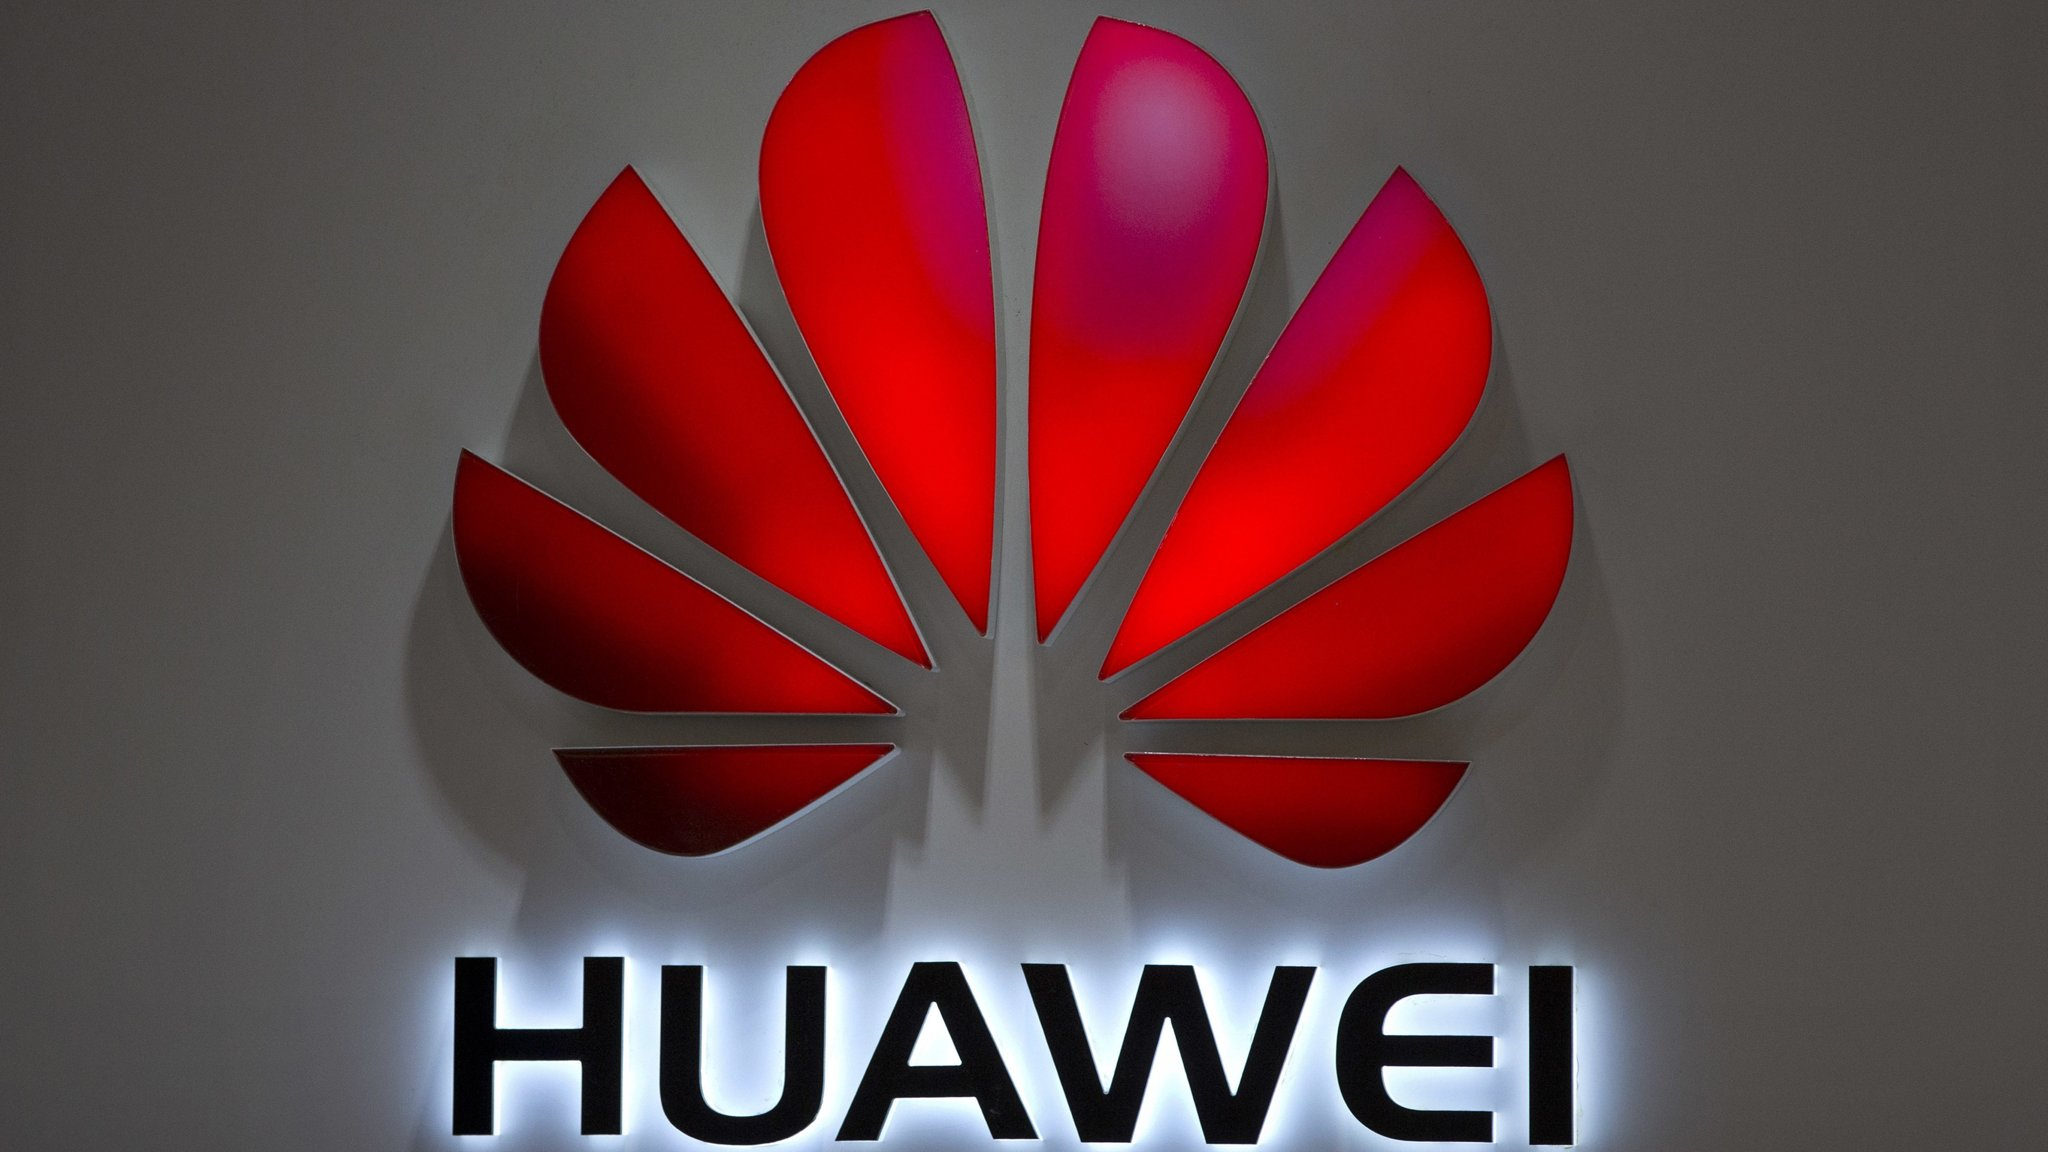 Google warns of US national security risks from Huawei ban